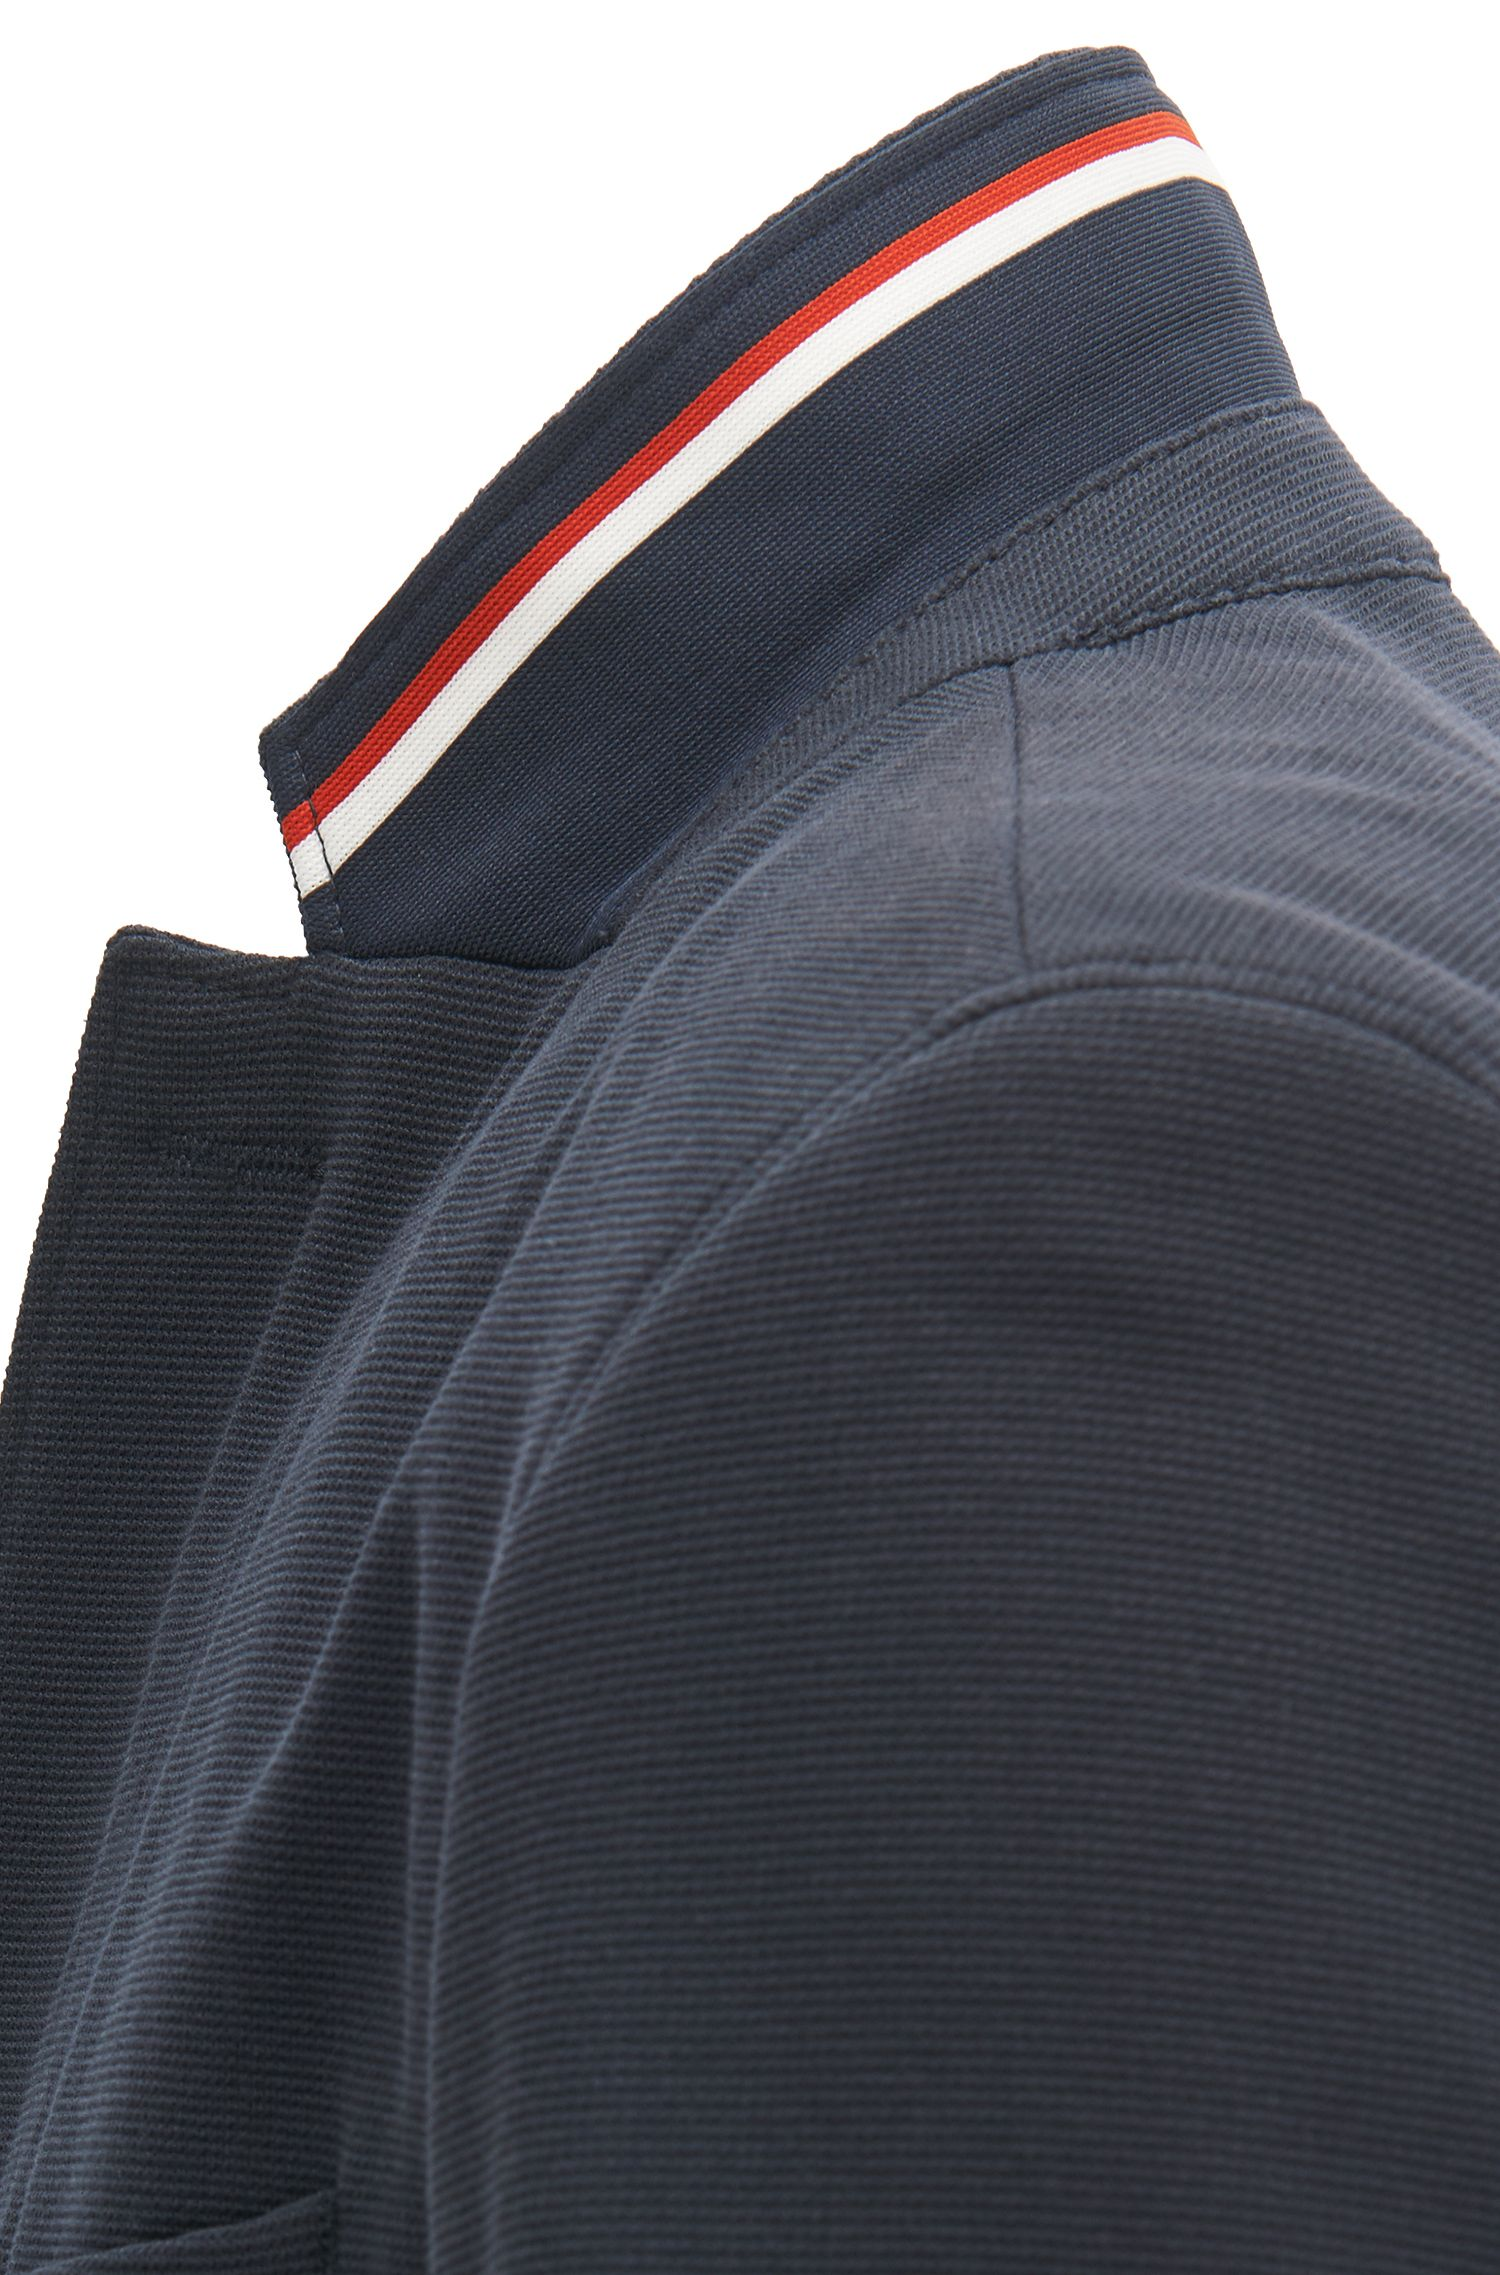 Extra-slim-fit jacket in structured jersey